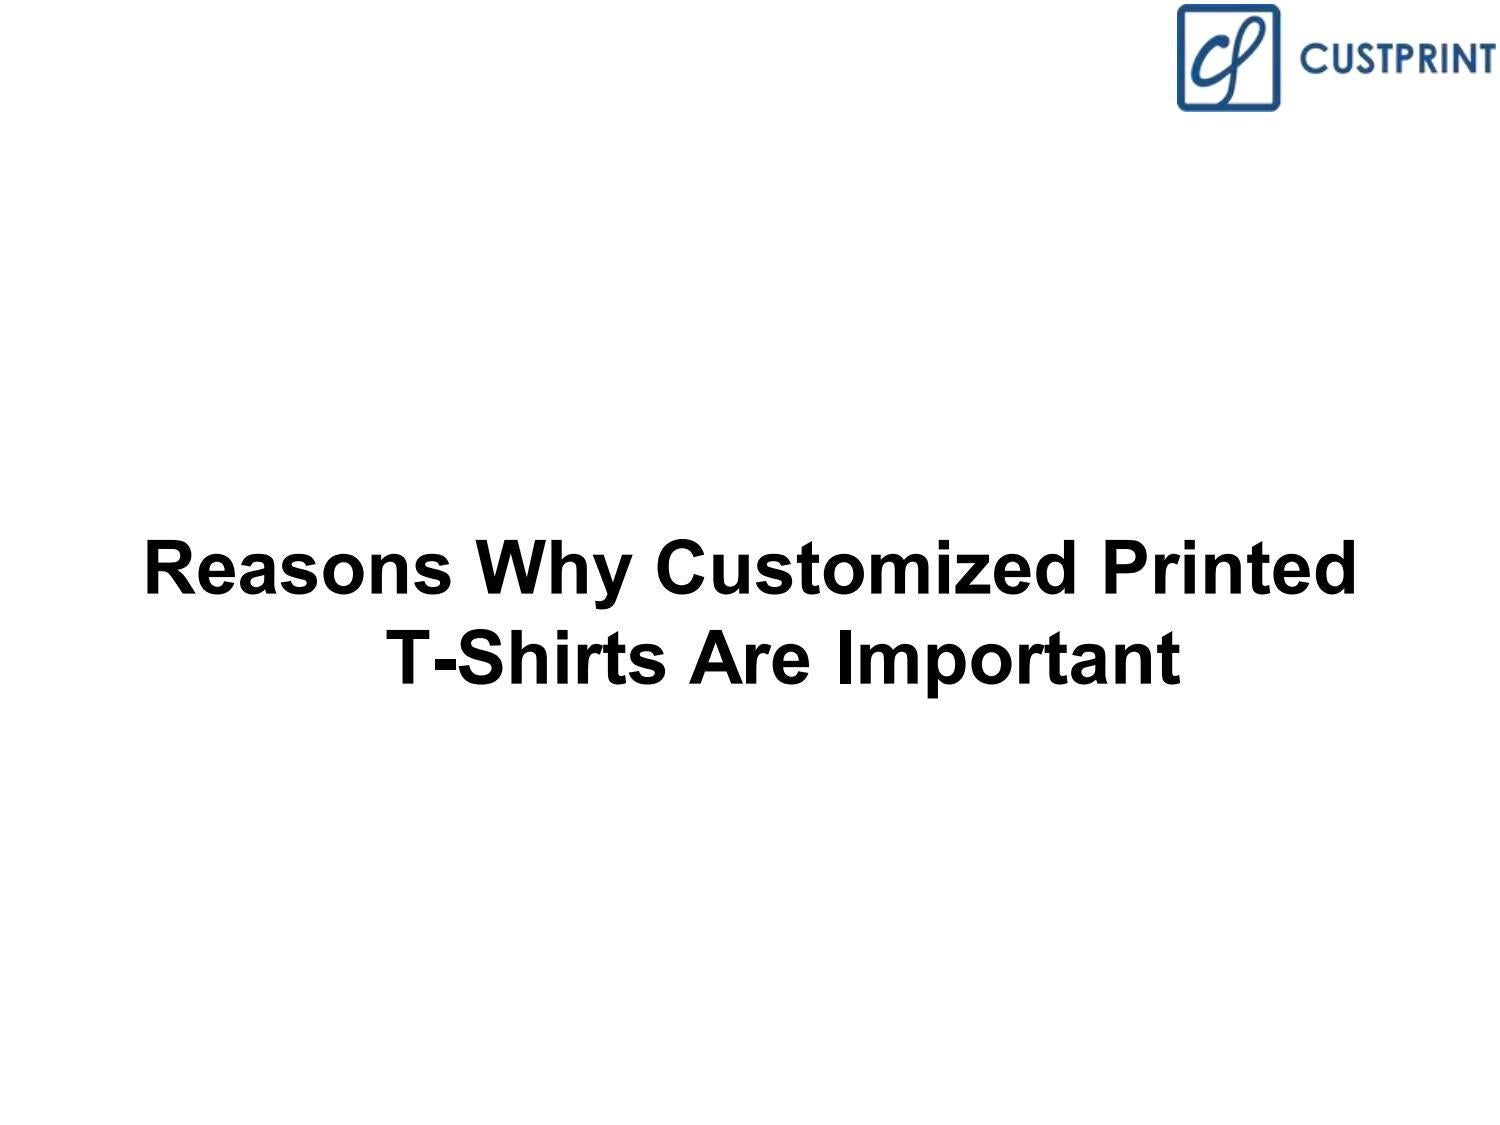 Reasons Why Customized Printed T-Shirts Are Important